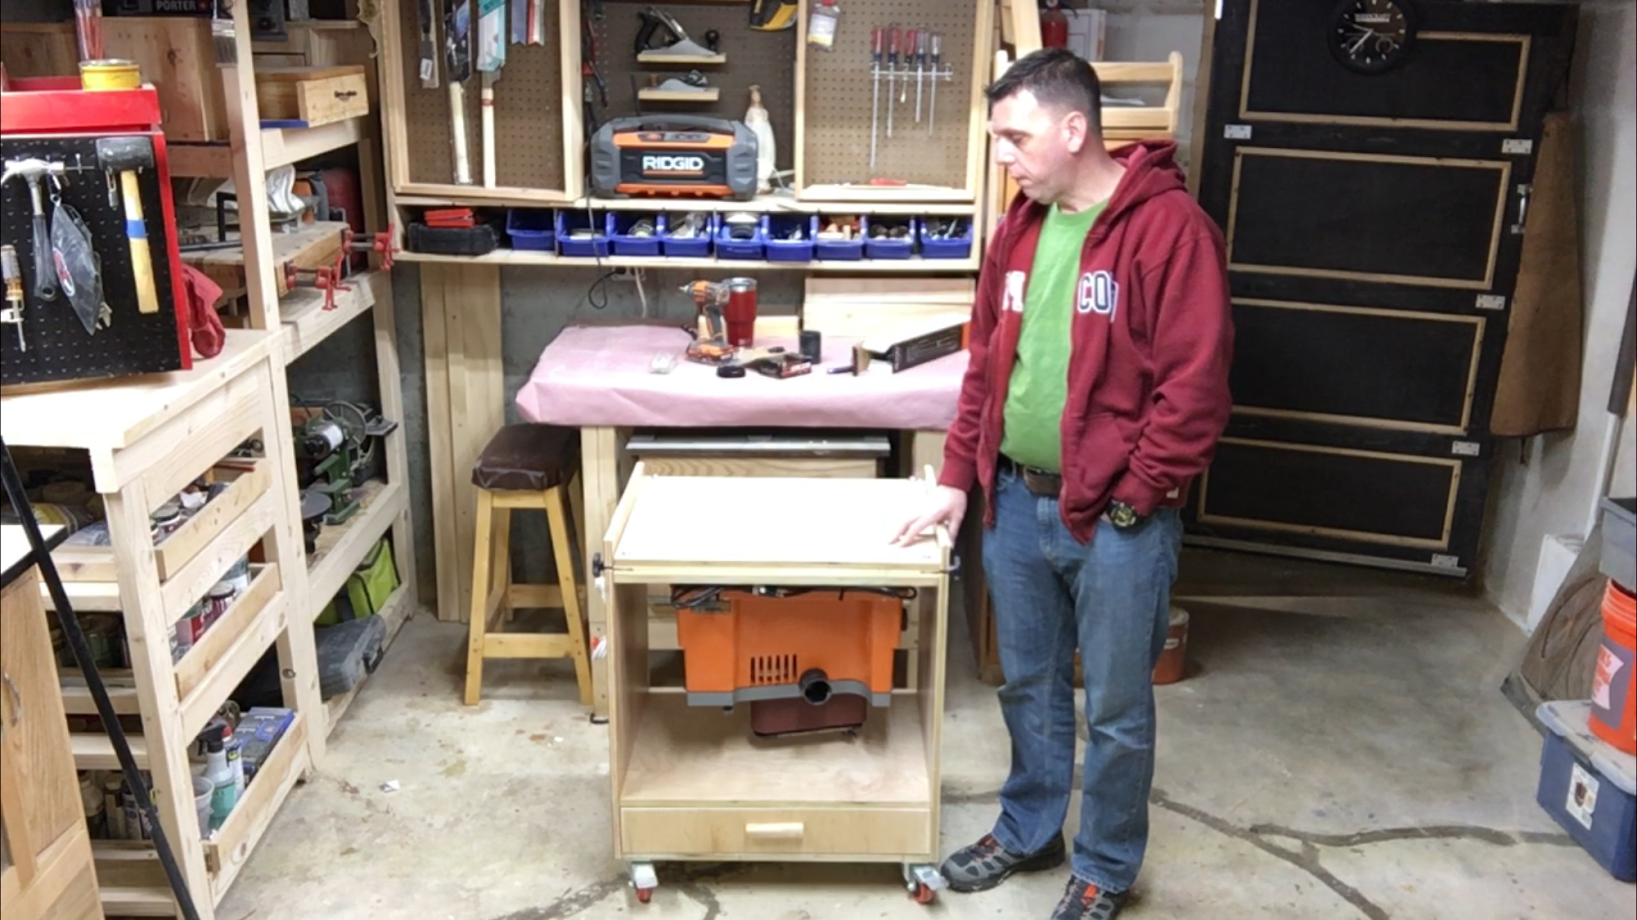 Finally an image of the cart with the sander flipped.